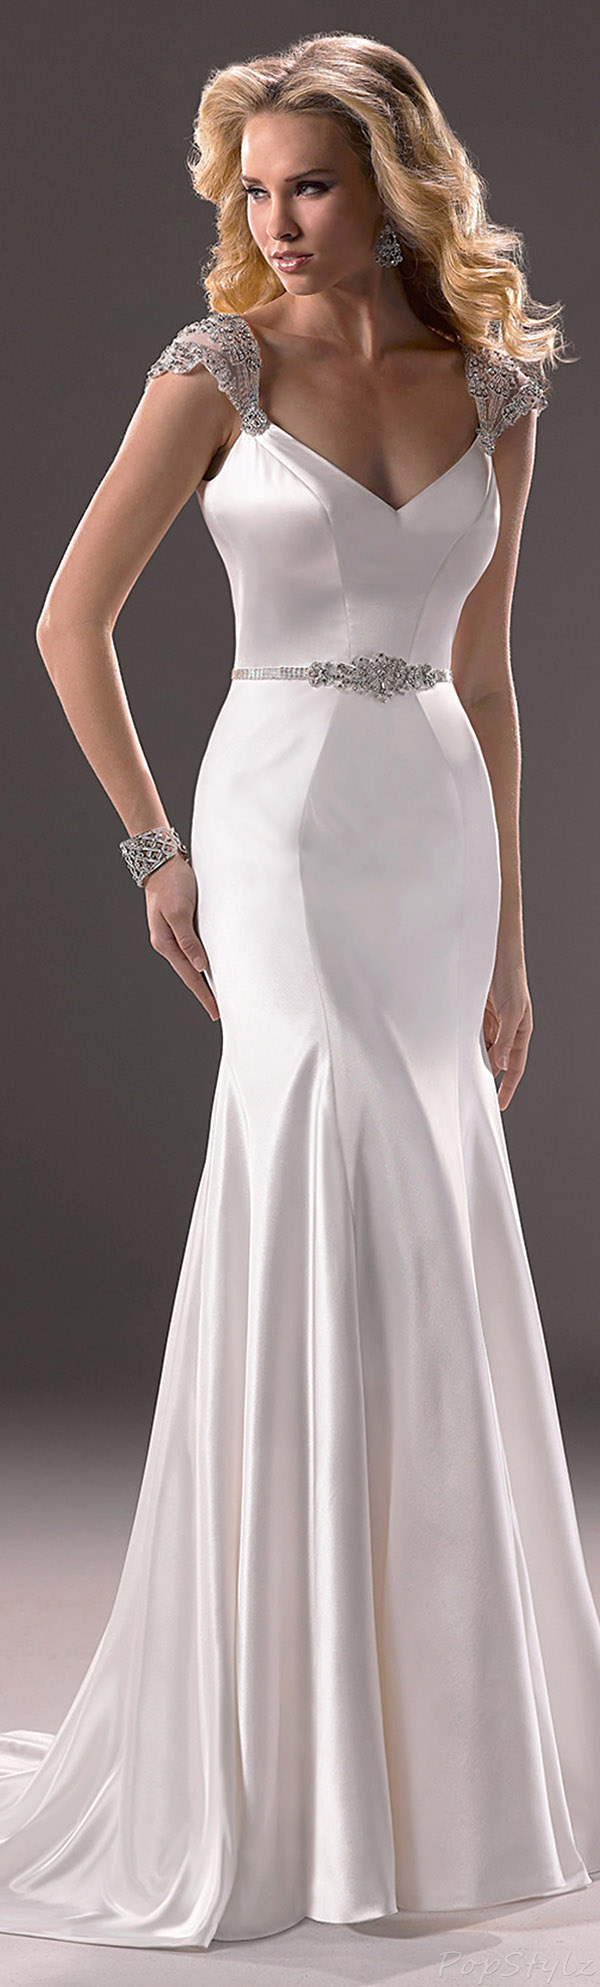 Angel Bride Satin Mermaid Bridal Gown